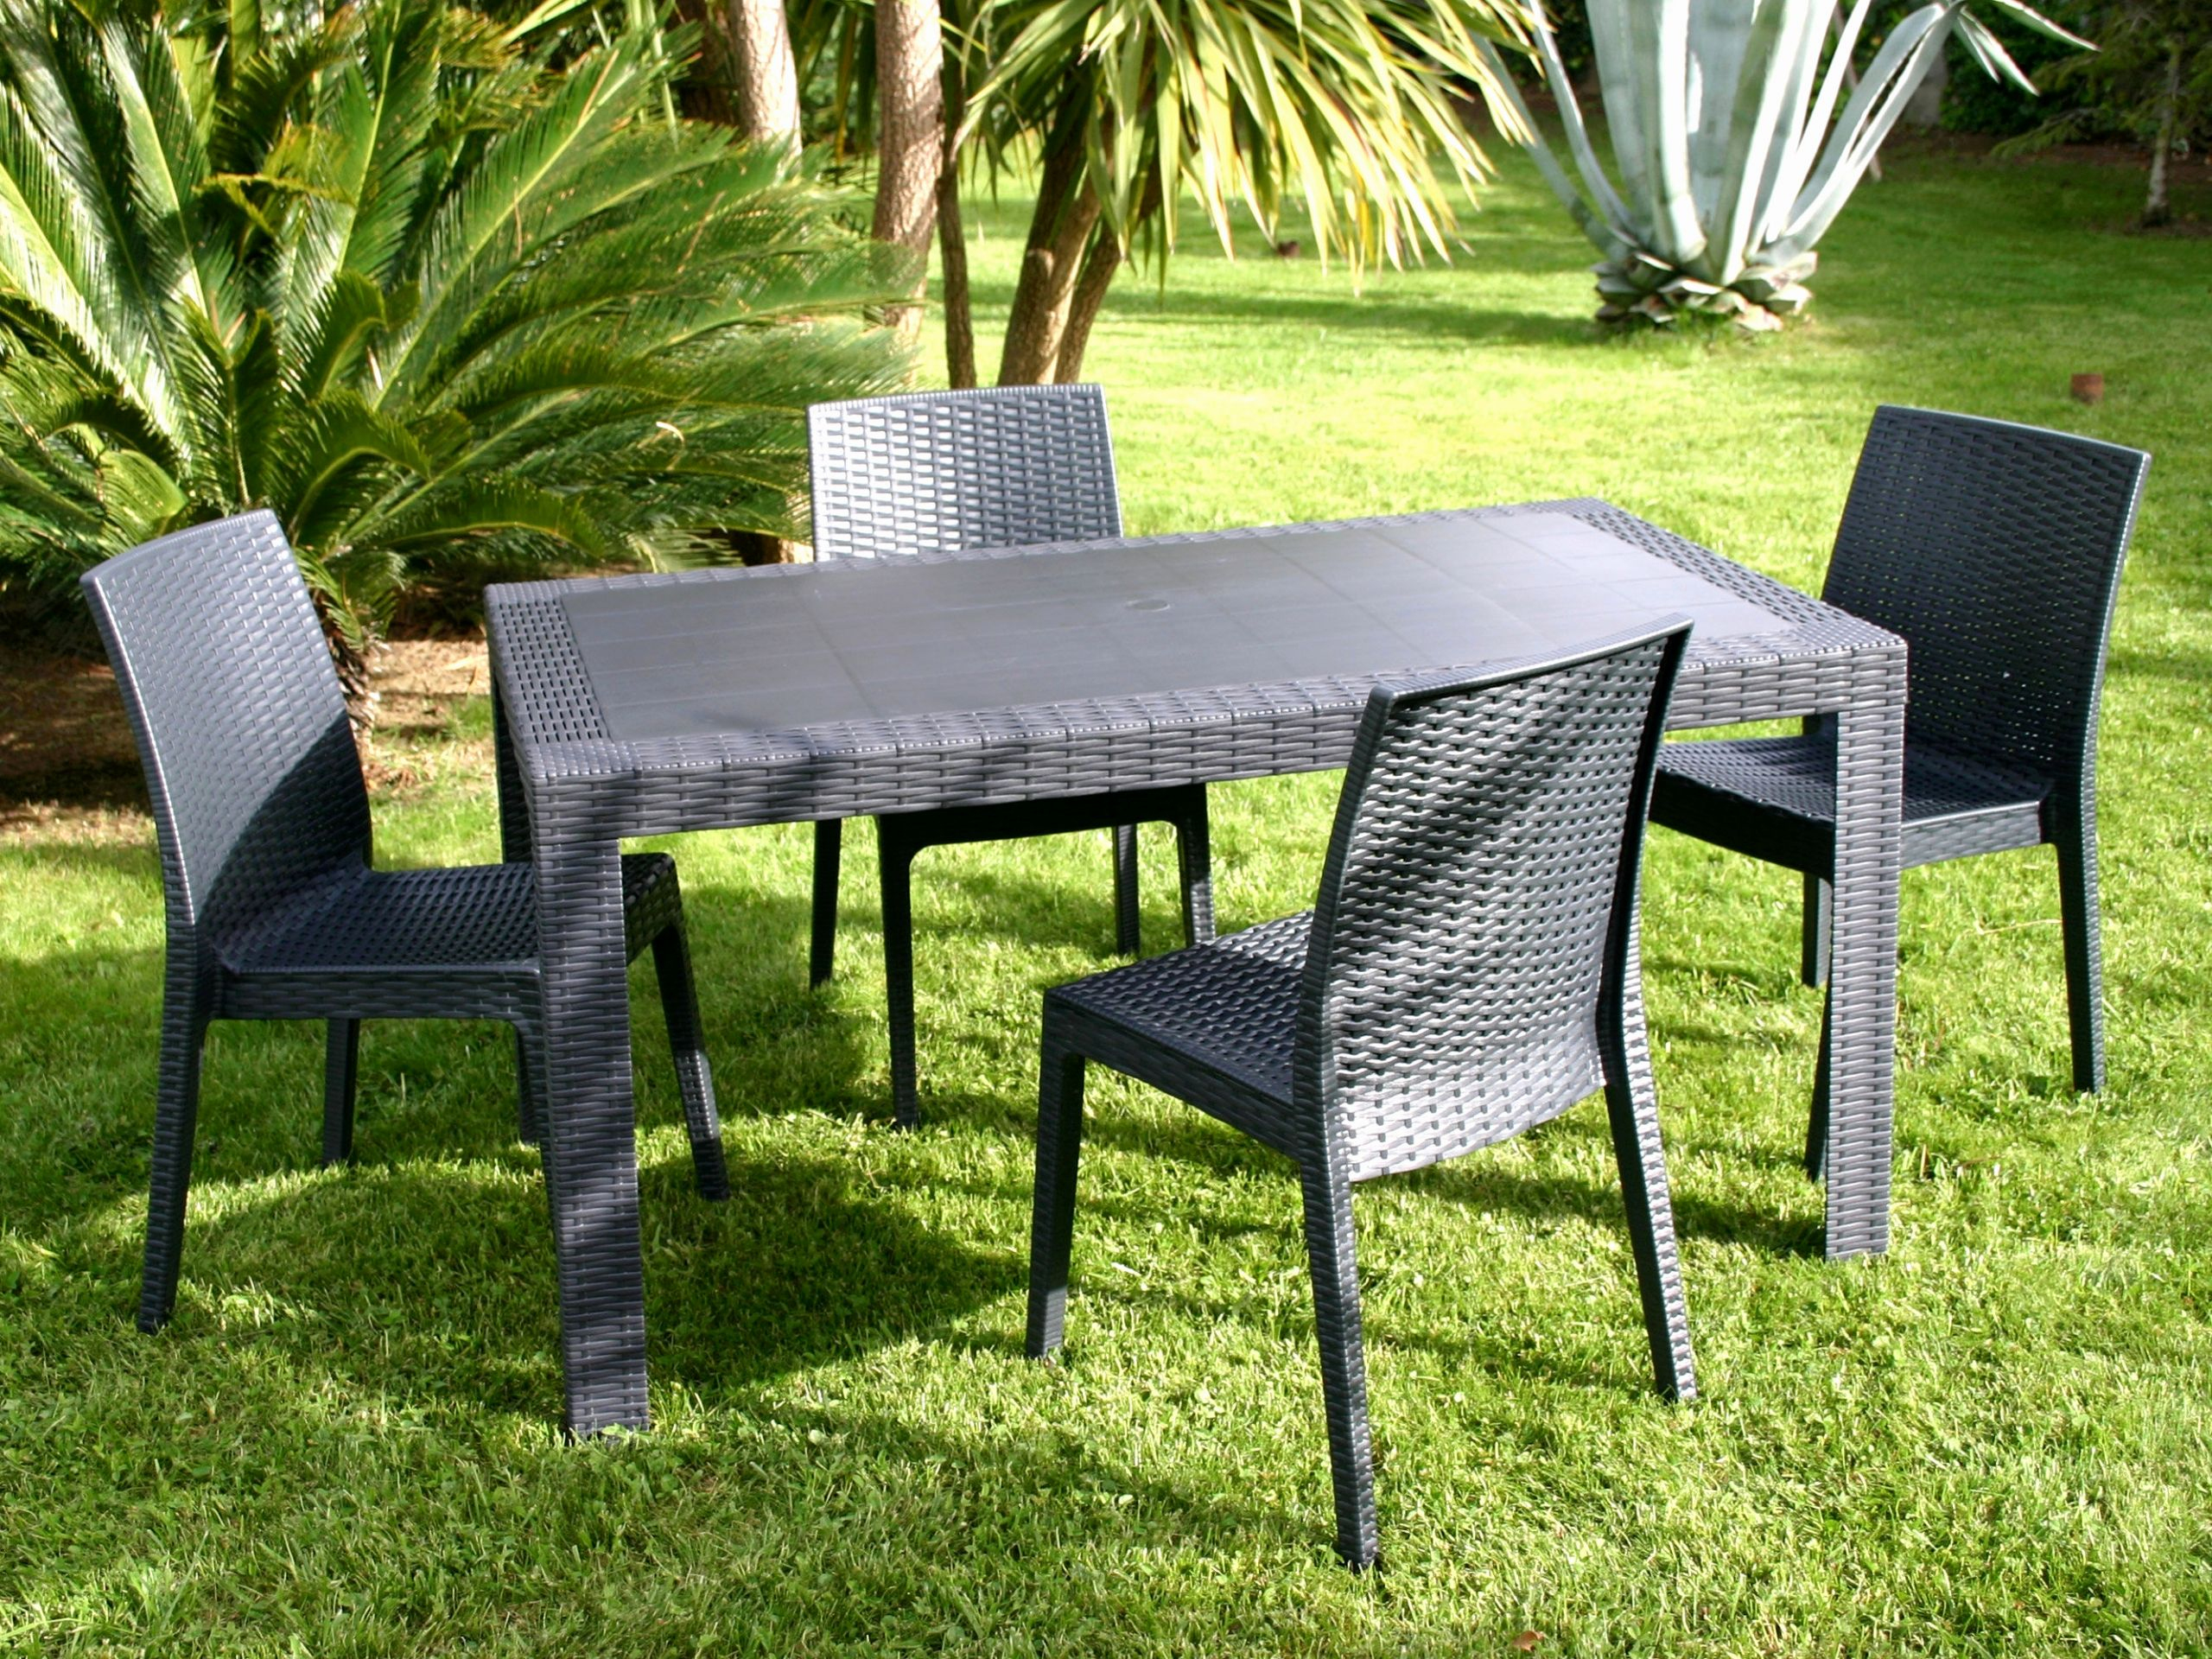 Table Exterieur Carrefour Best Of Catalogue Carrefour Abris ... serapportantà Abris De Jardin Carrefour